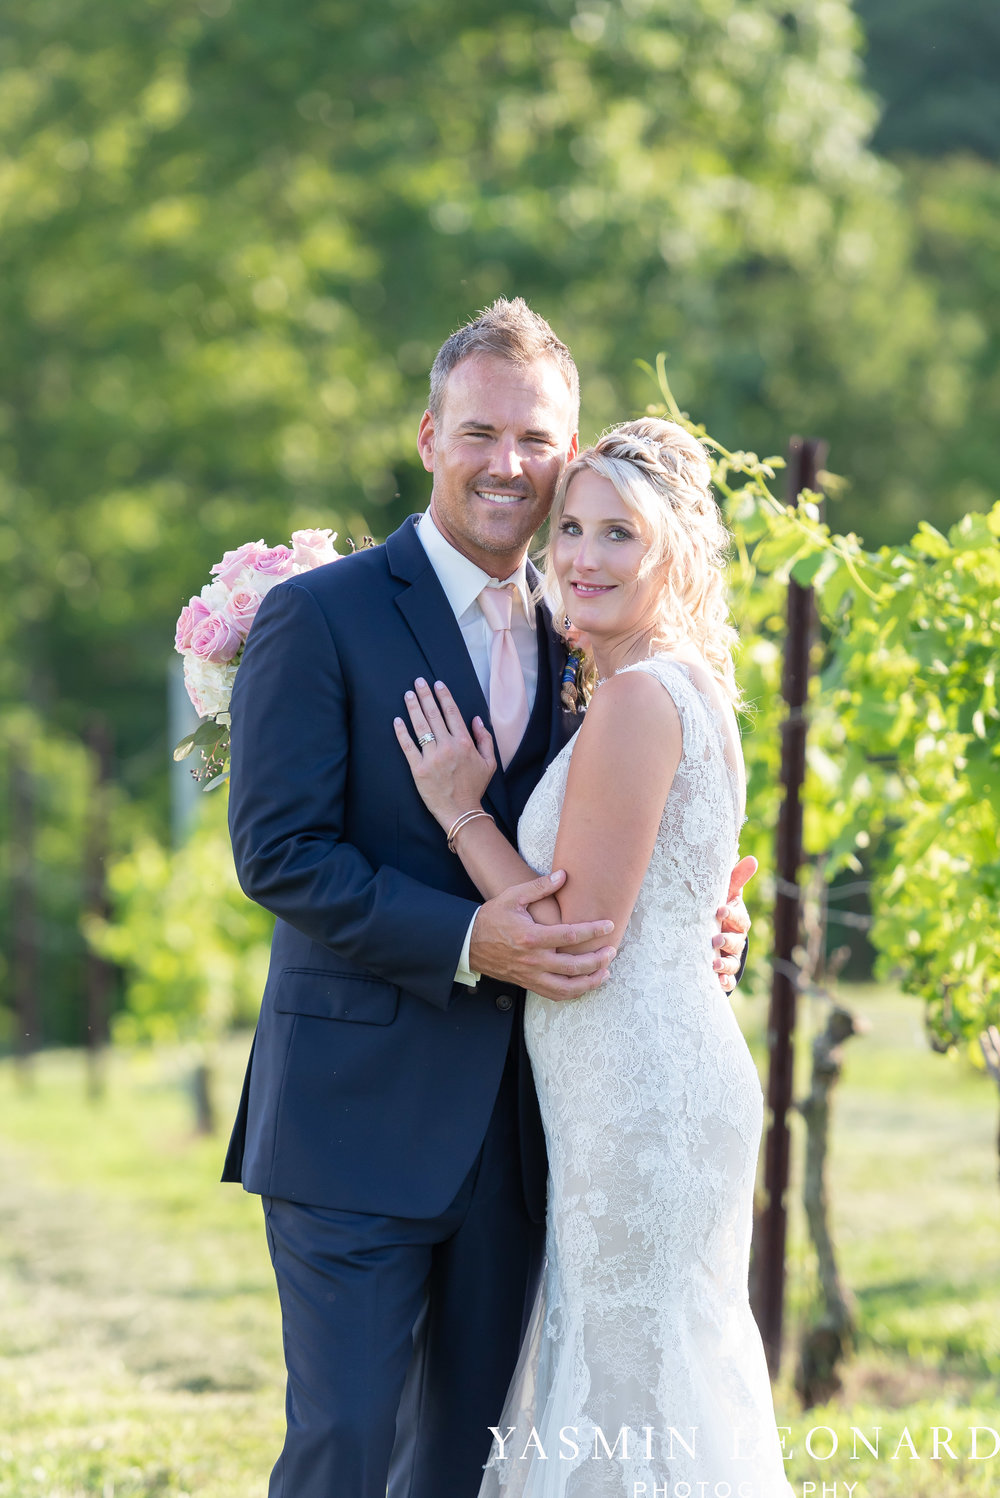 Elkin Creek Vineyard - Elkin Creek Weddings - NC Wine - NC Wineries - NC Weddings - NC Photographers - NC Wedding Photographer - NC Winery Wedding Ideas - Yasmin Leonard Photography - High Point Wedding Photographer-55.jpg